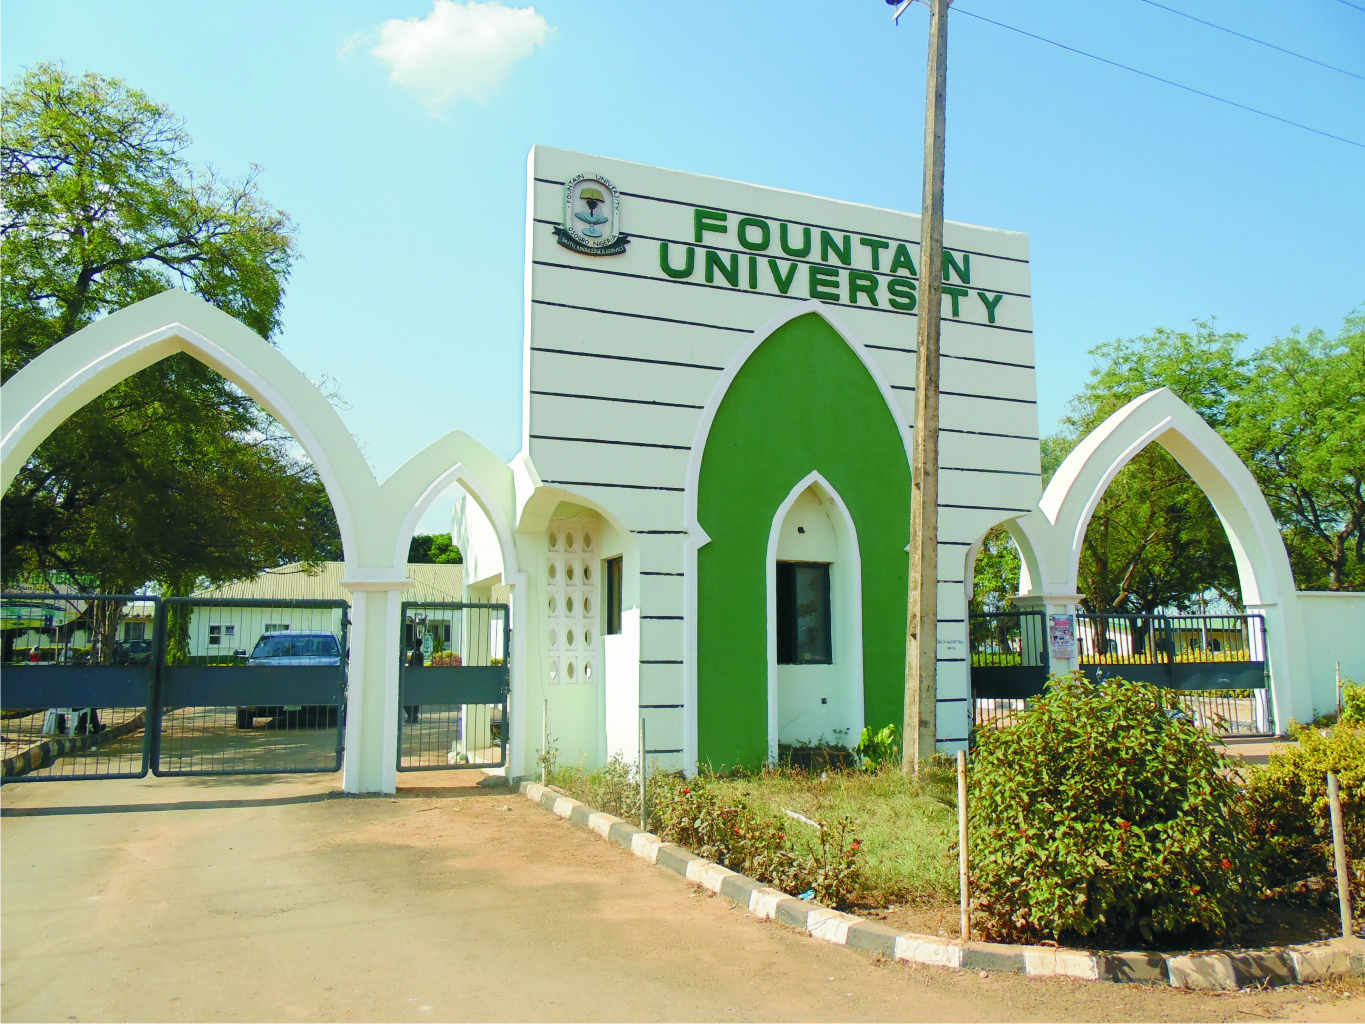 Photo of Fountain University 7th Convocation Ceremony And 10th year Anniversary Schedule